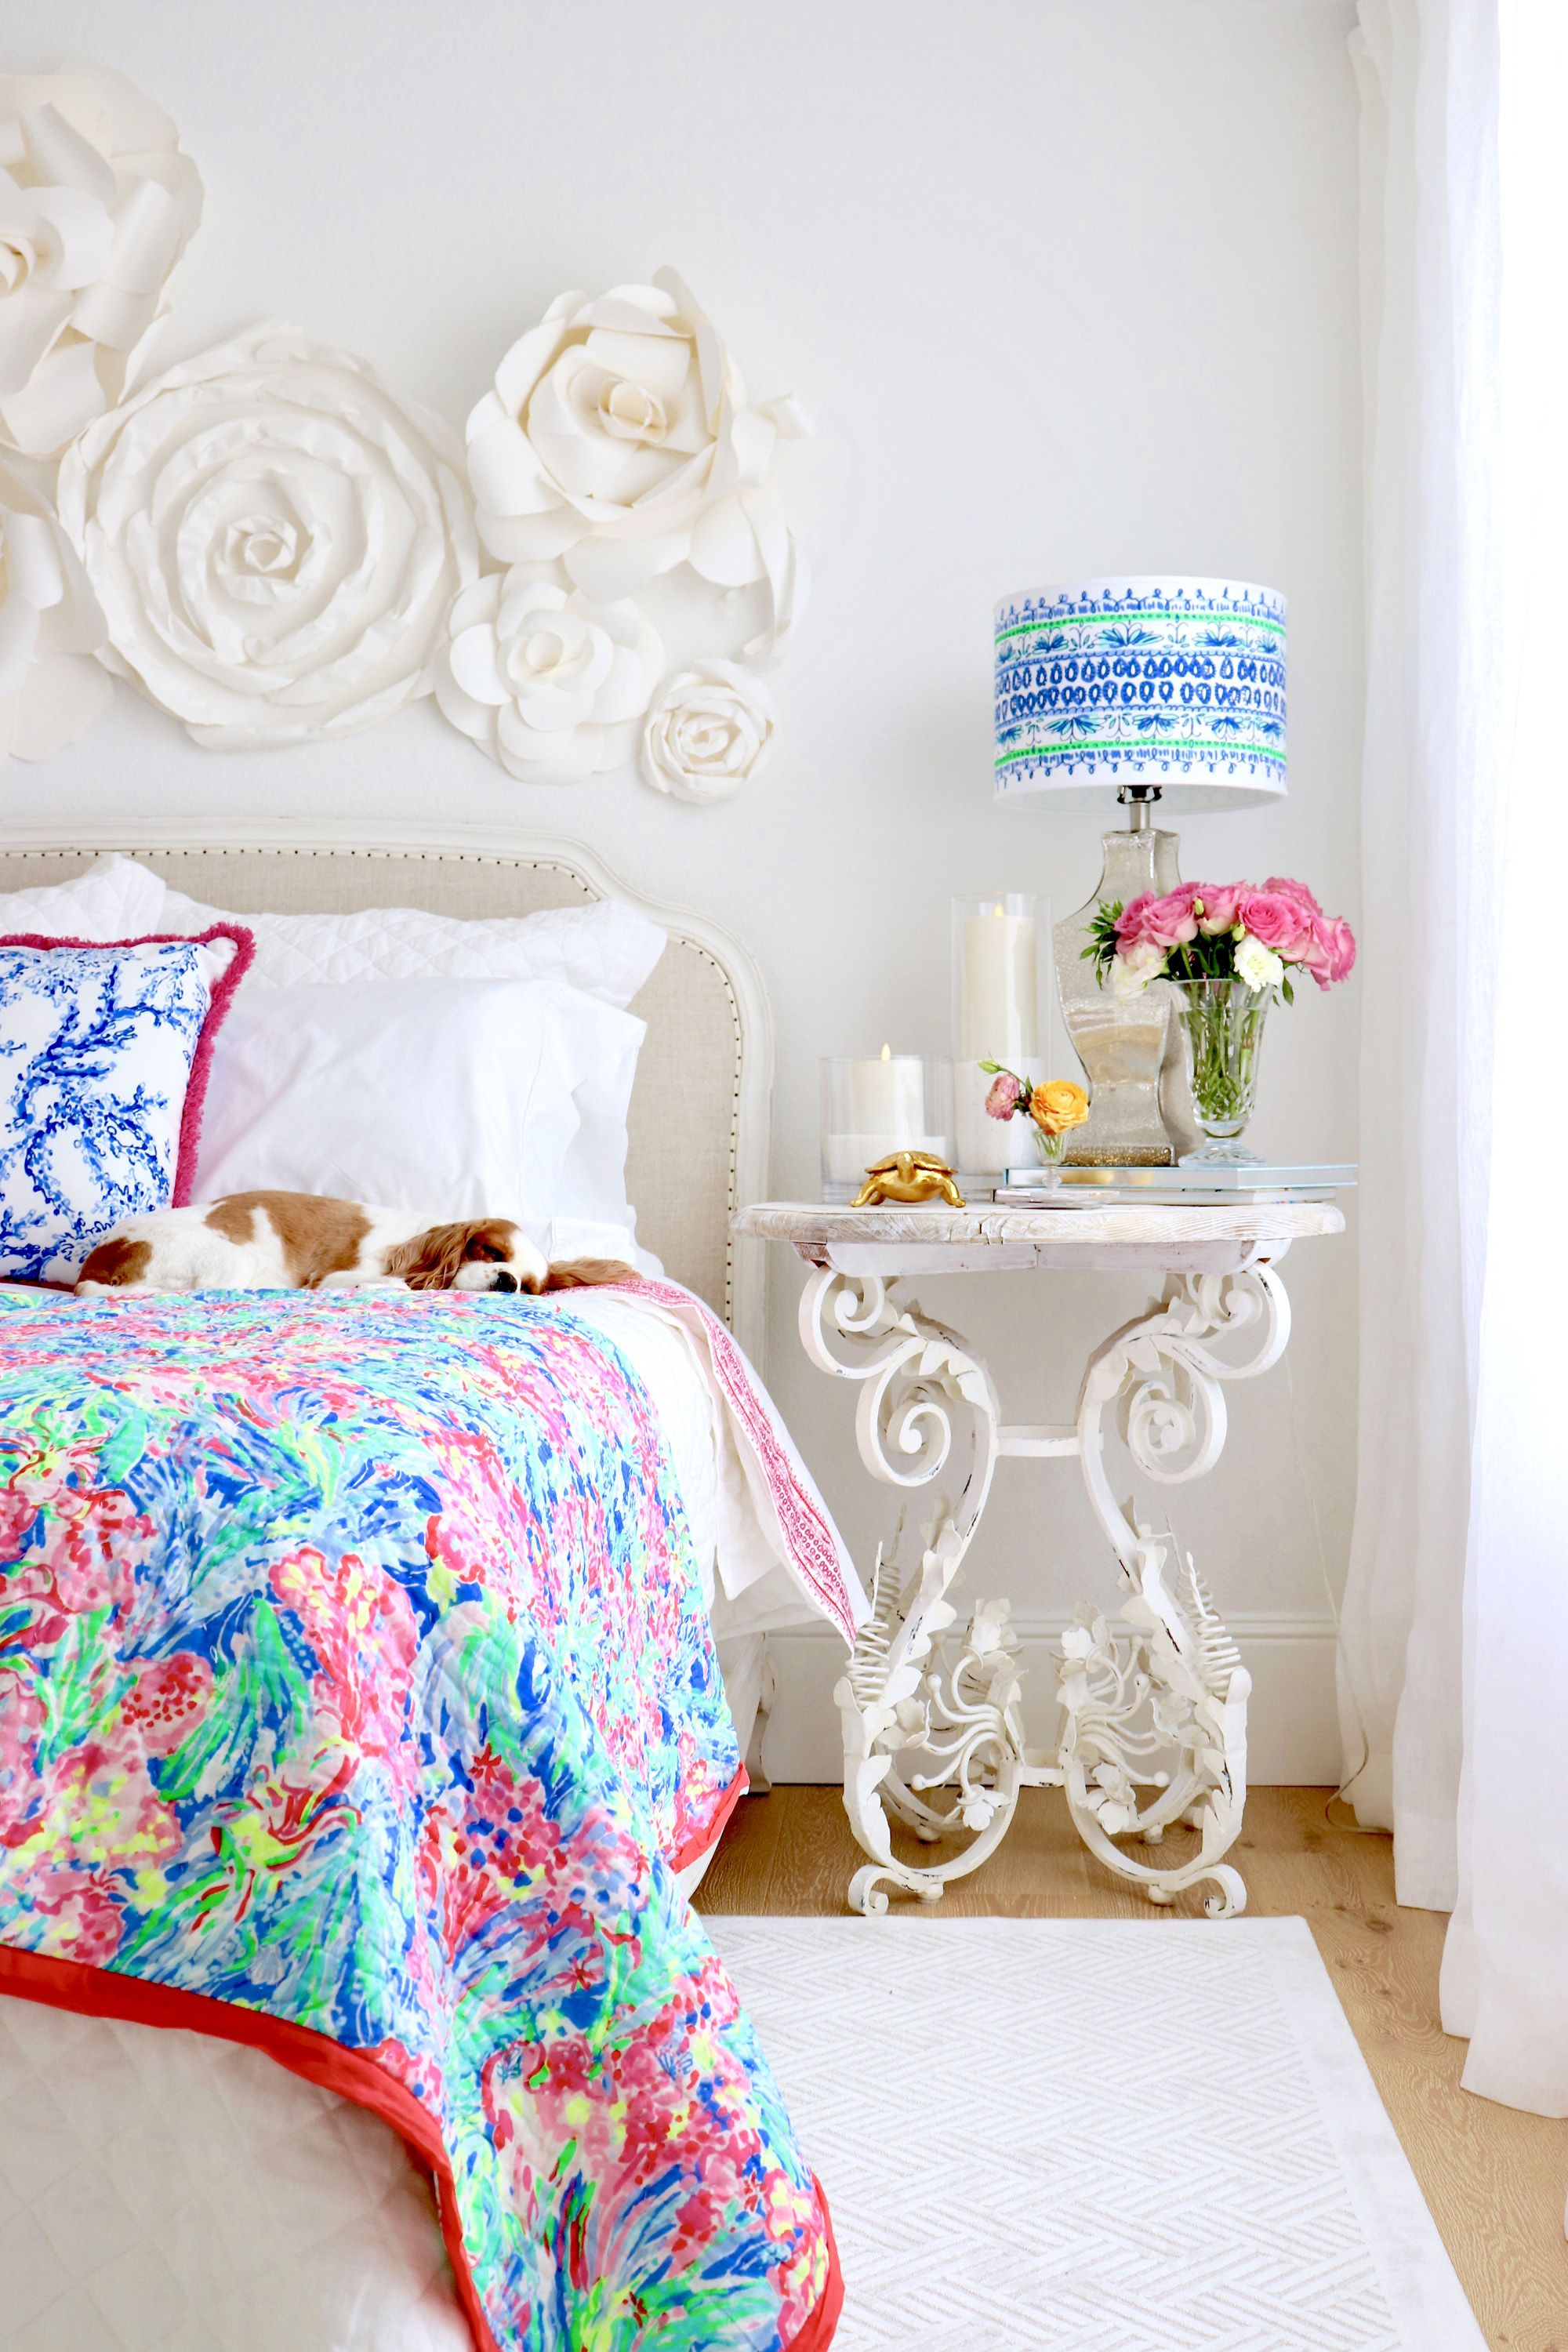 cef191938675be KRISTY WICKS--Colorful Bedroom Update with the new Lilly Pulitzer & Pottery  Barn Collection